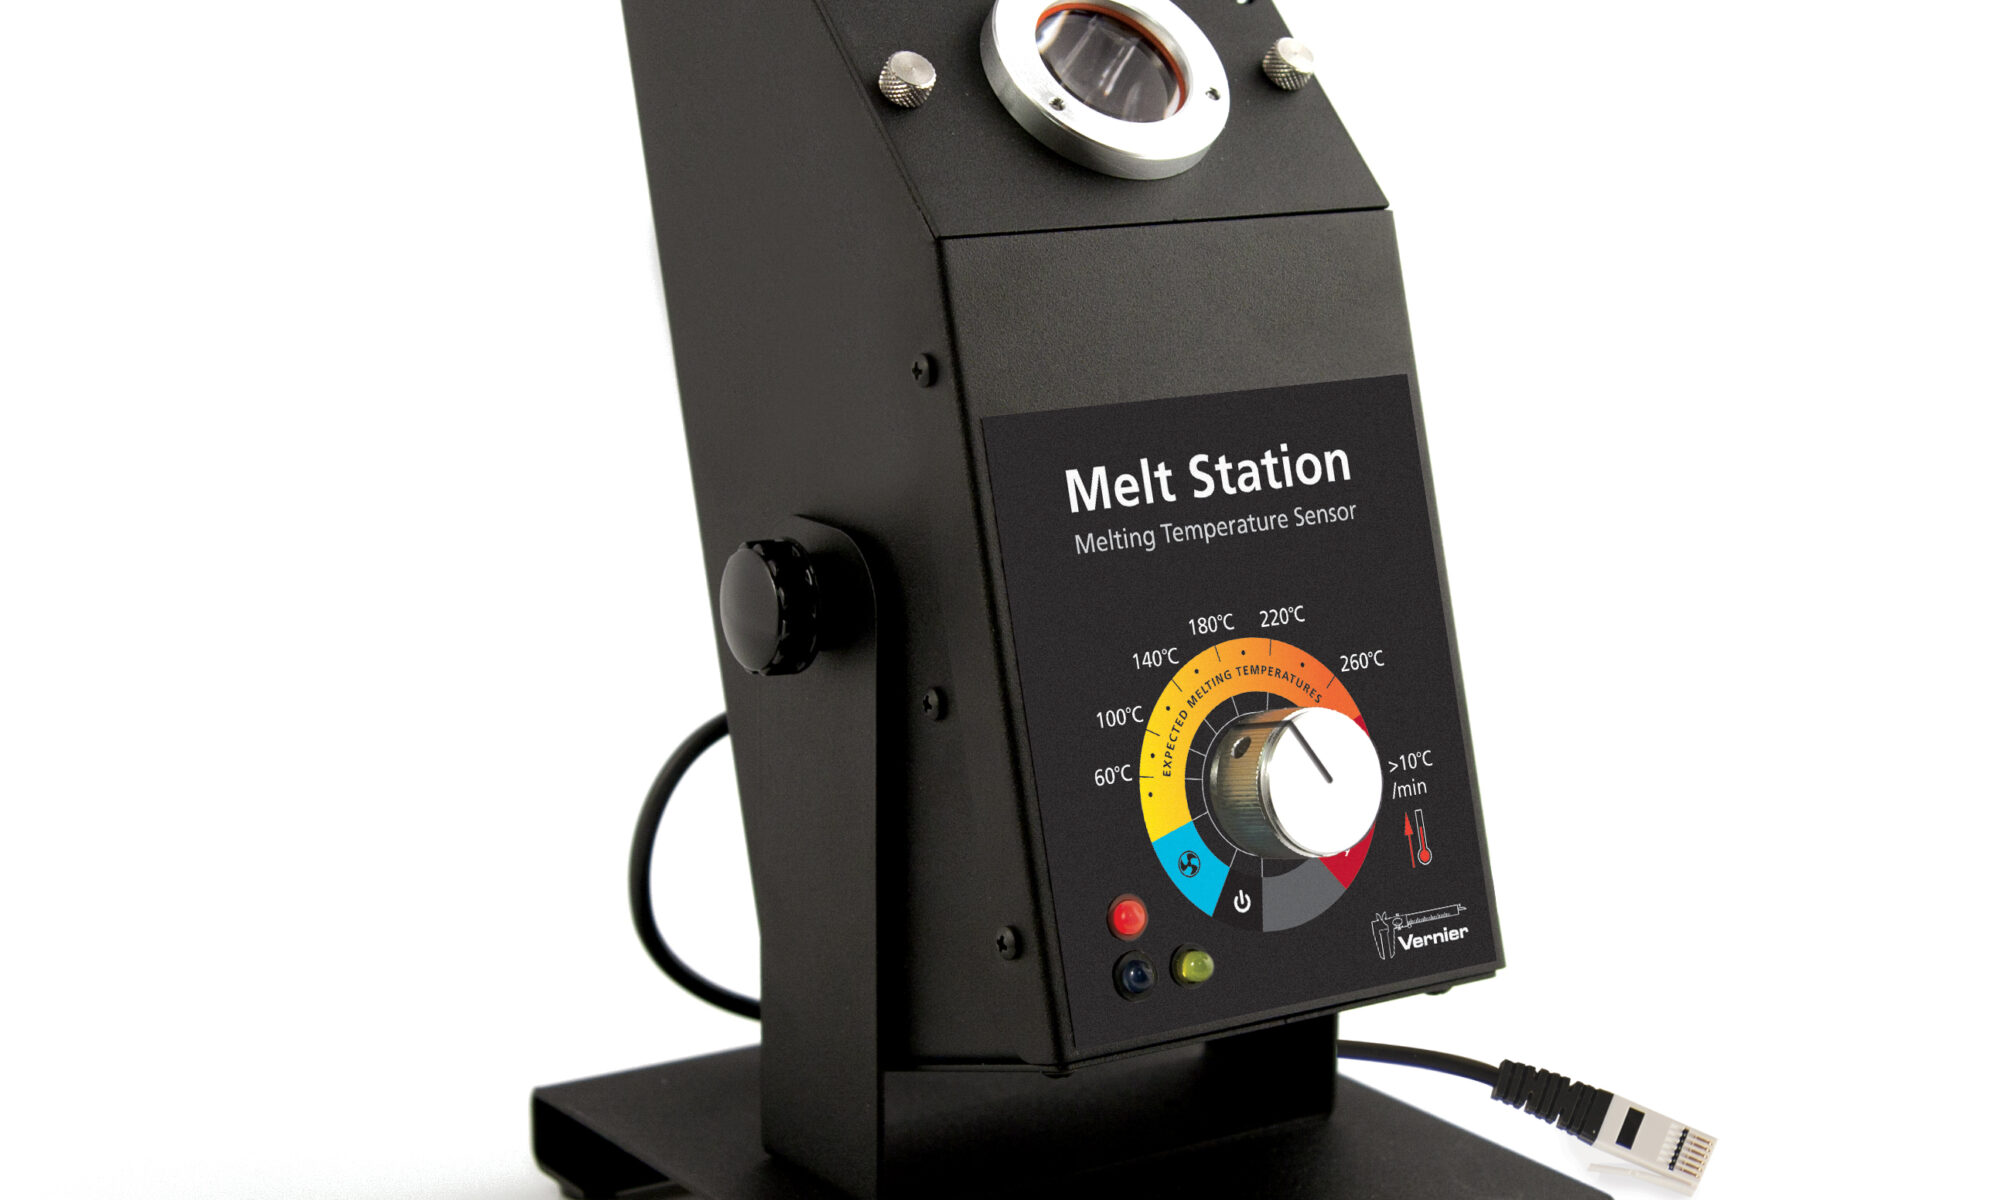 Image of Melt Station